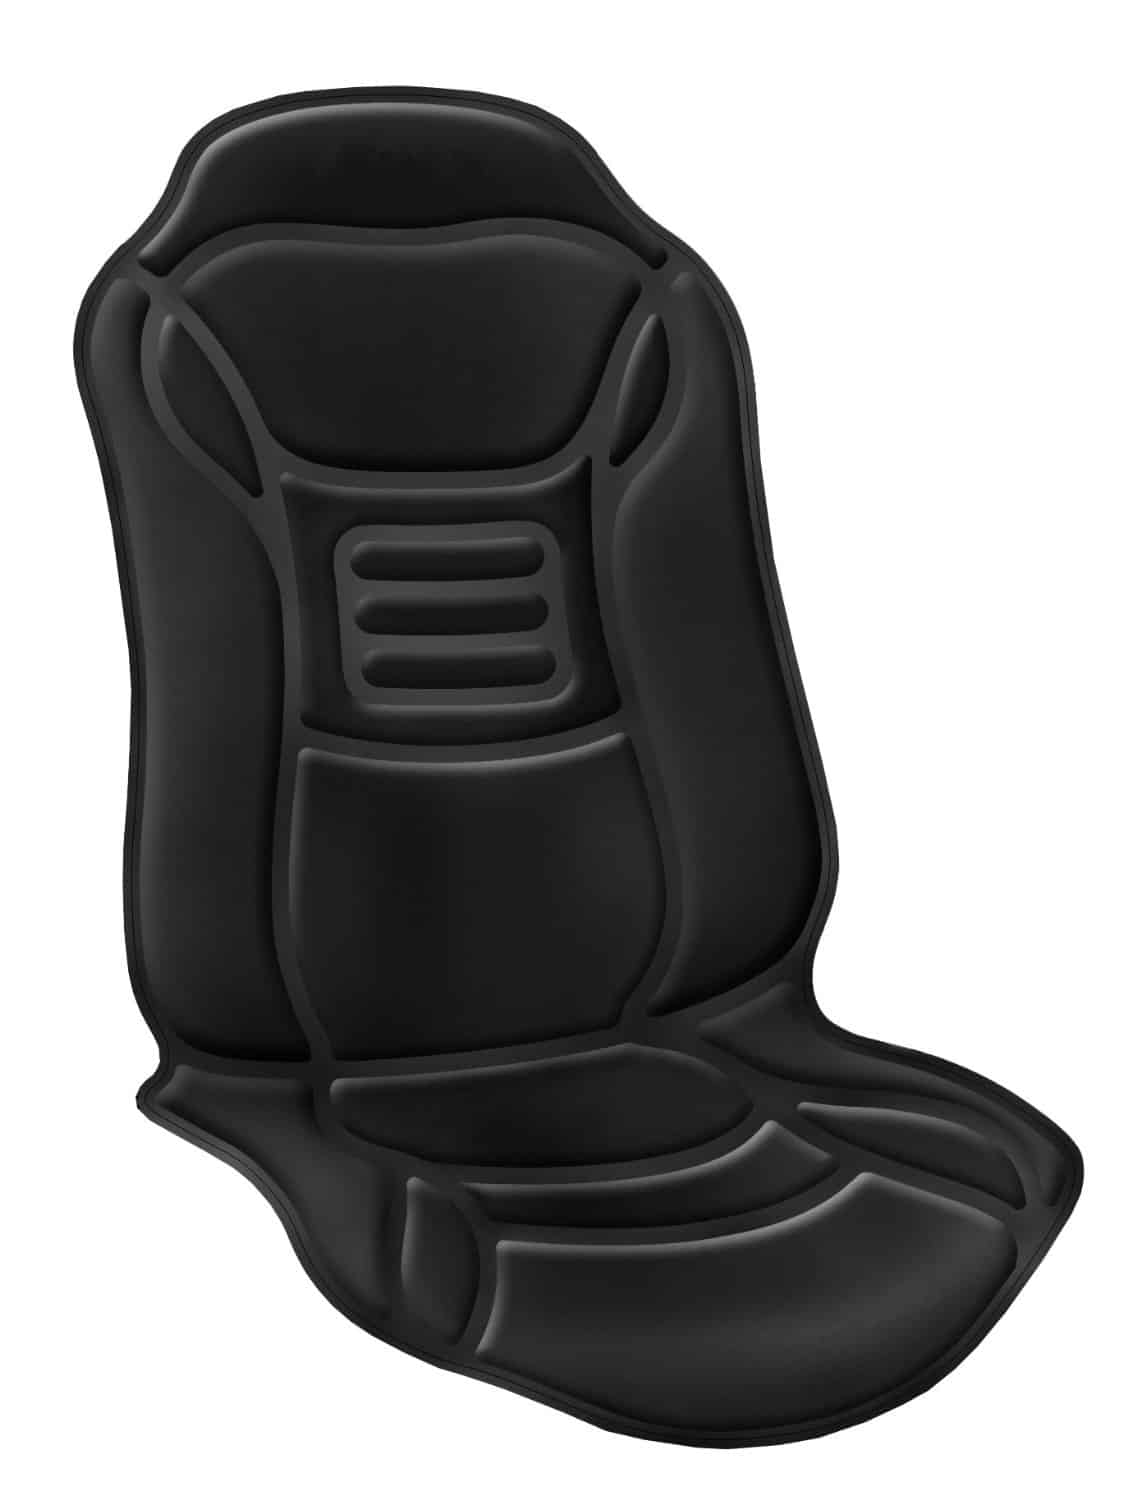 best massage pads for chairs 2016 for your massage needs. Black Bedroom Furniture Sets. Home Design Ideas